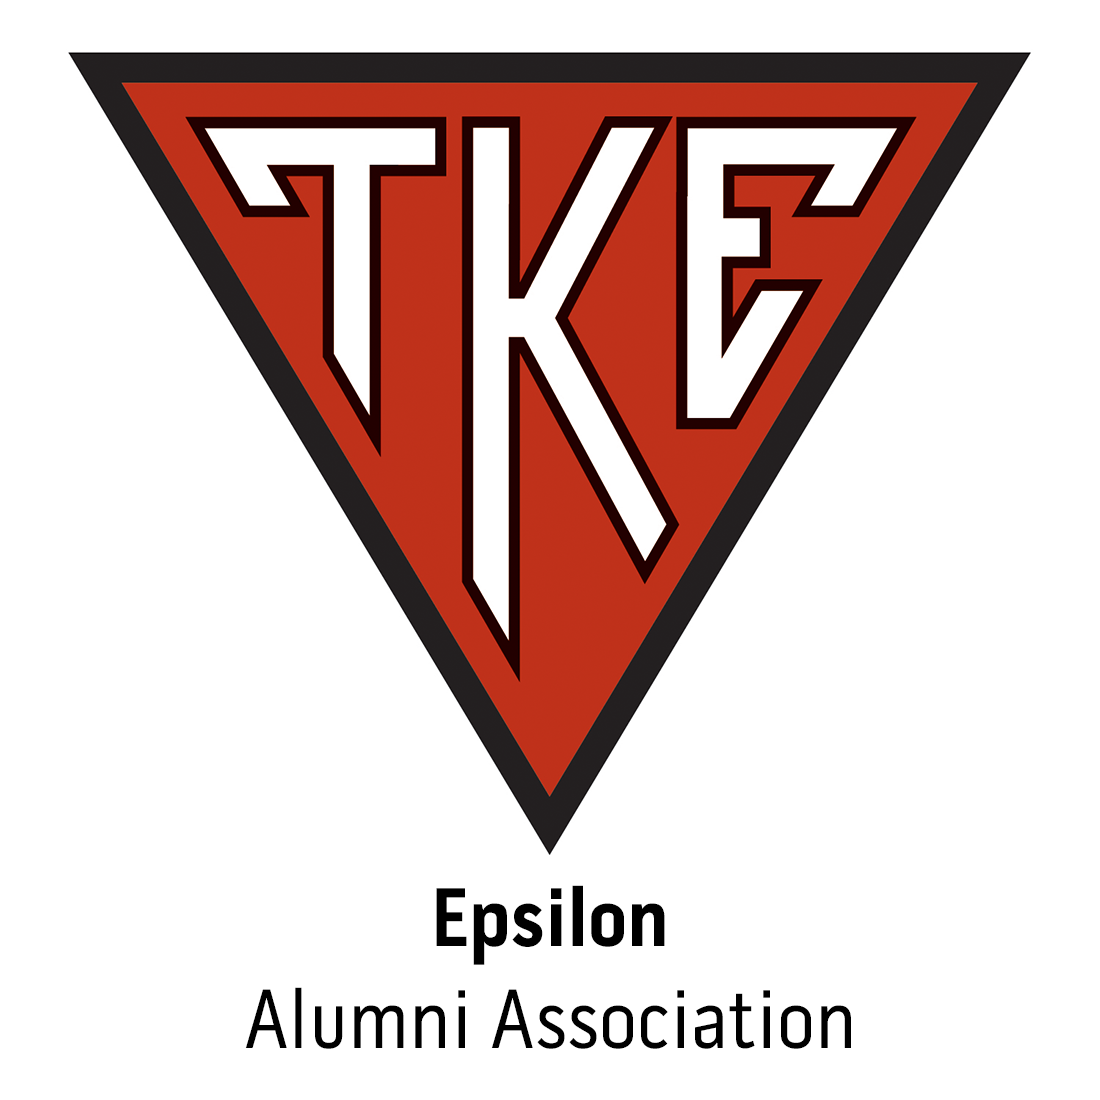 Epsilon Alumni Association Alumni at Iowa State University